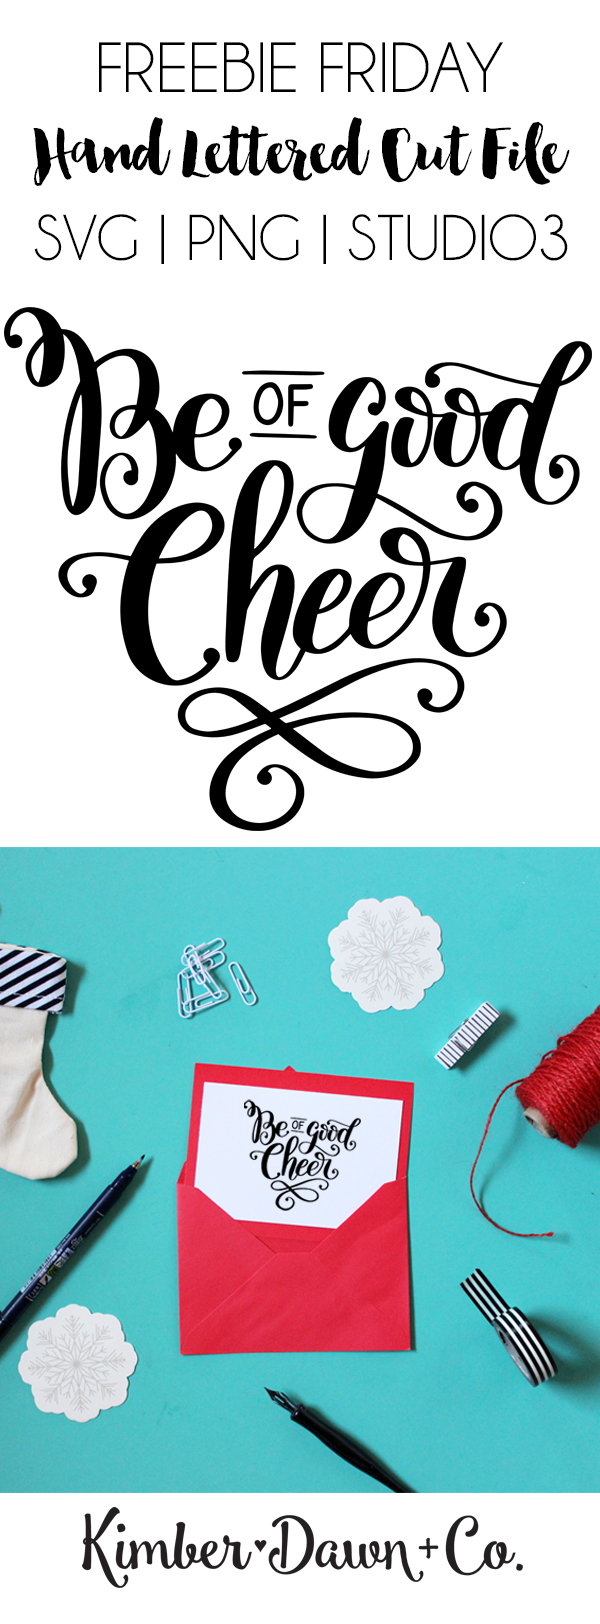 Hand Lettered Be of Good Cheer Free SVG Cut File | KimberDawnCo.com